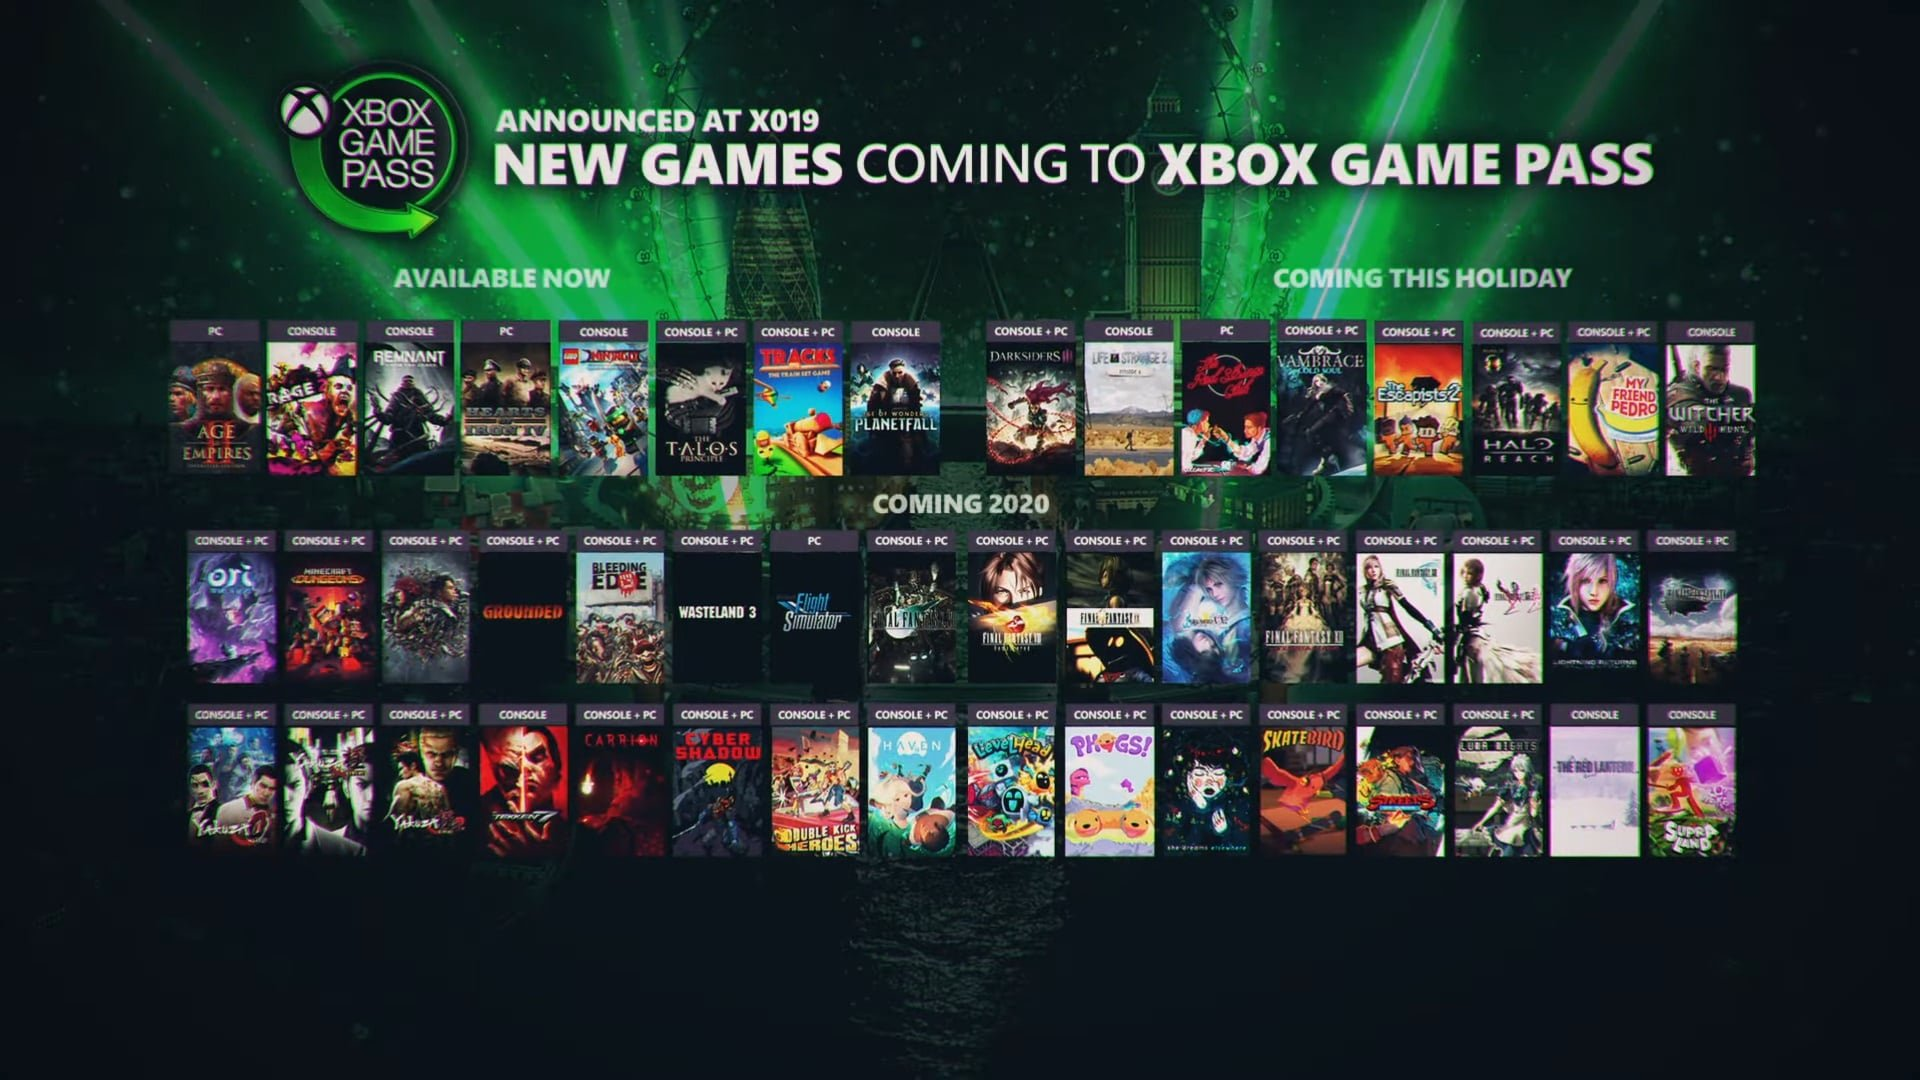 Witcher 3, Halo Reach, Yakuza, Final Fantasy Franchise and More Coming to Xbox Game Pass